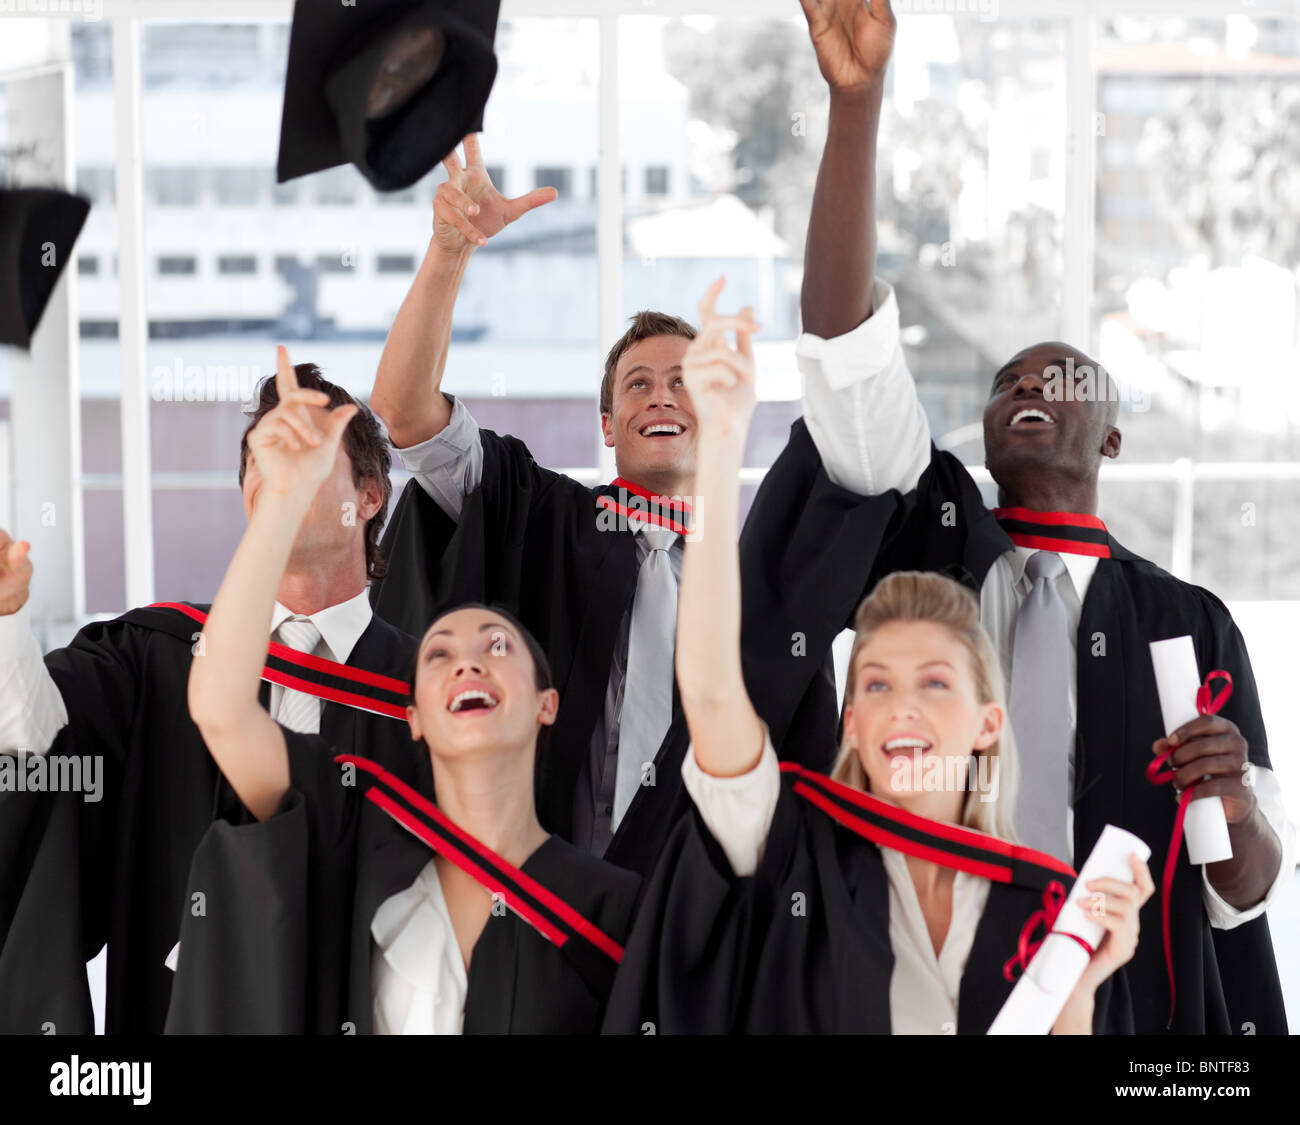 Group of people Graduating from College - Stock Image